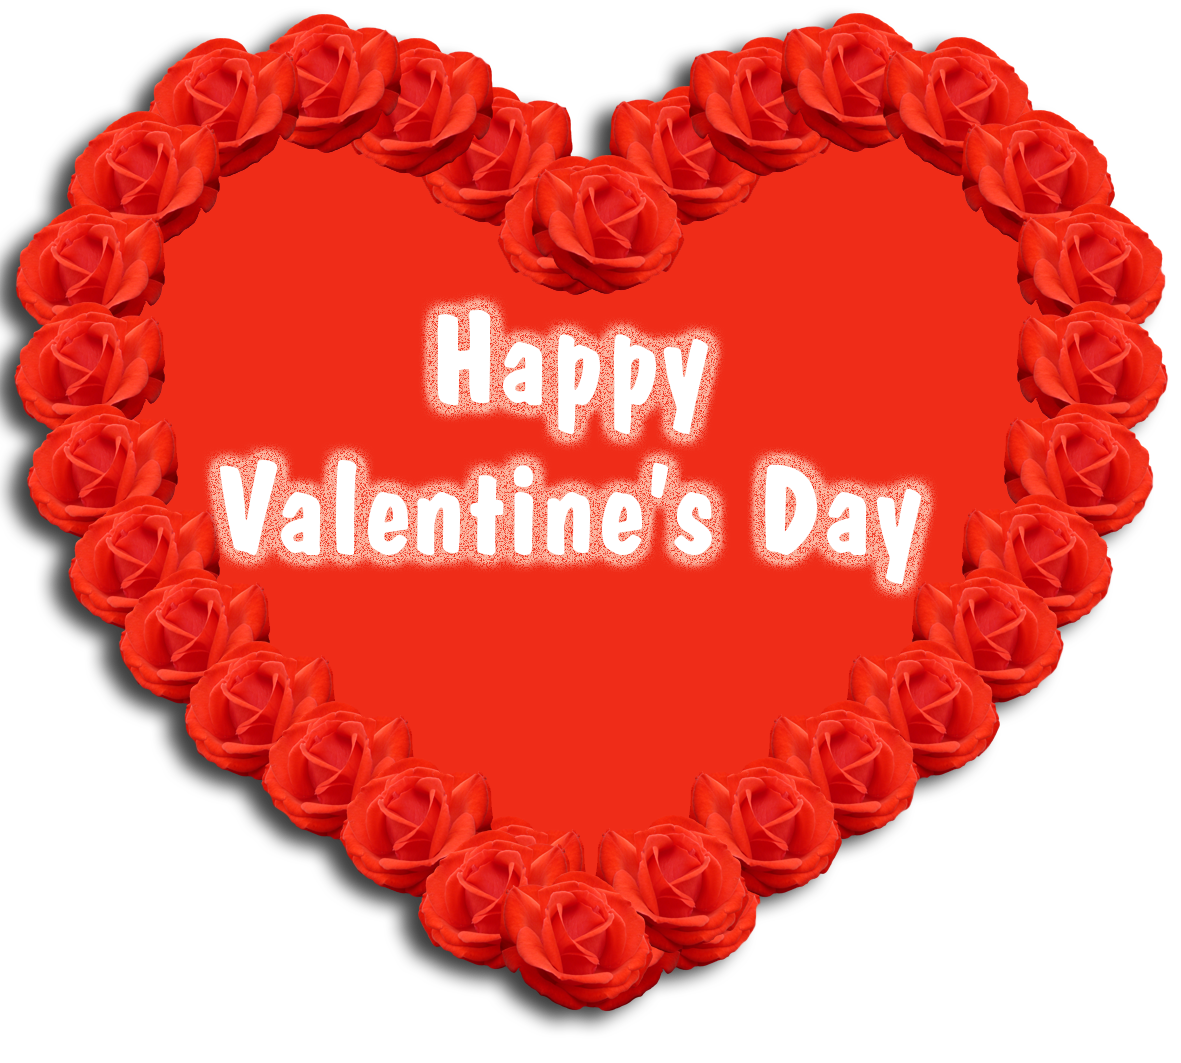 Happy Valentine's day greeting heart roses